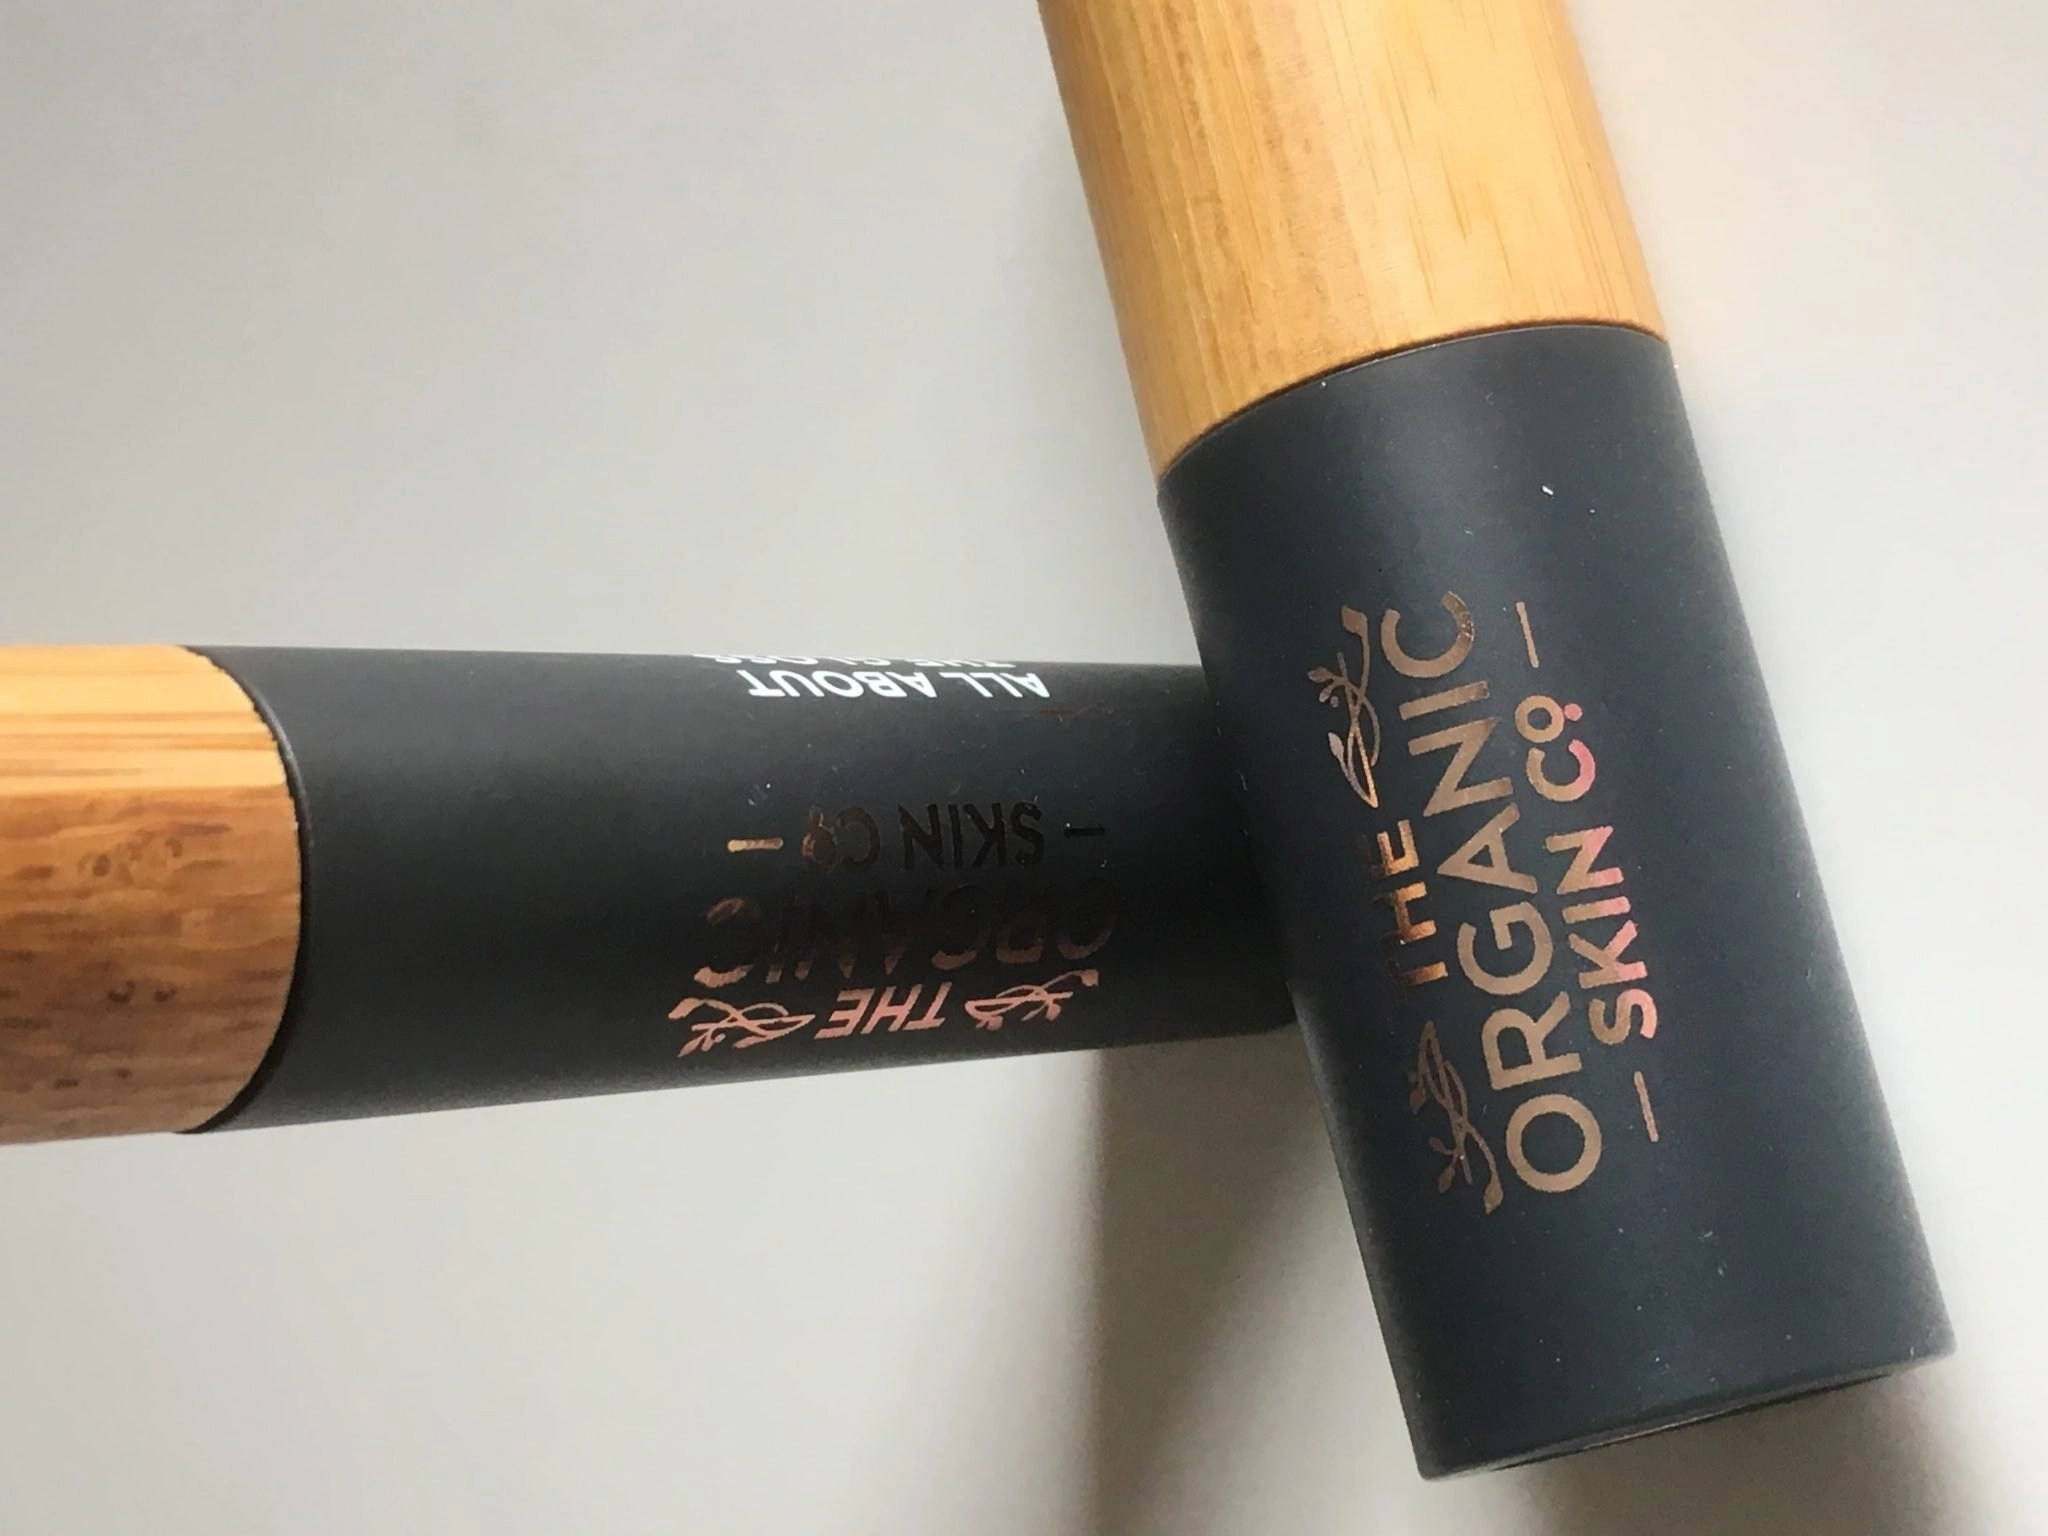 About the Gloss and Lip Service Packaging